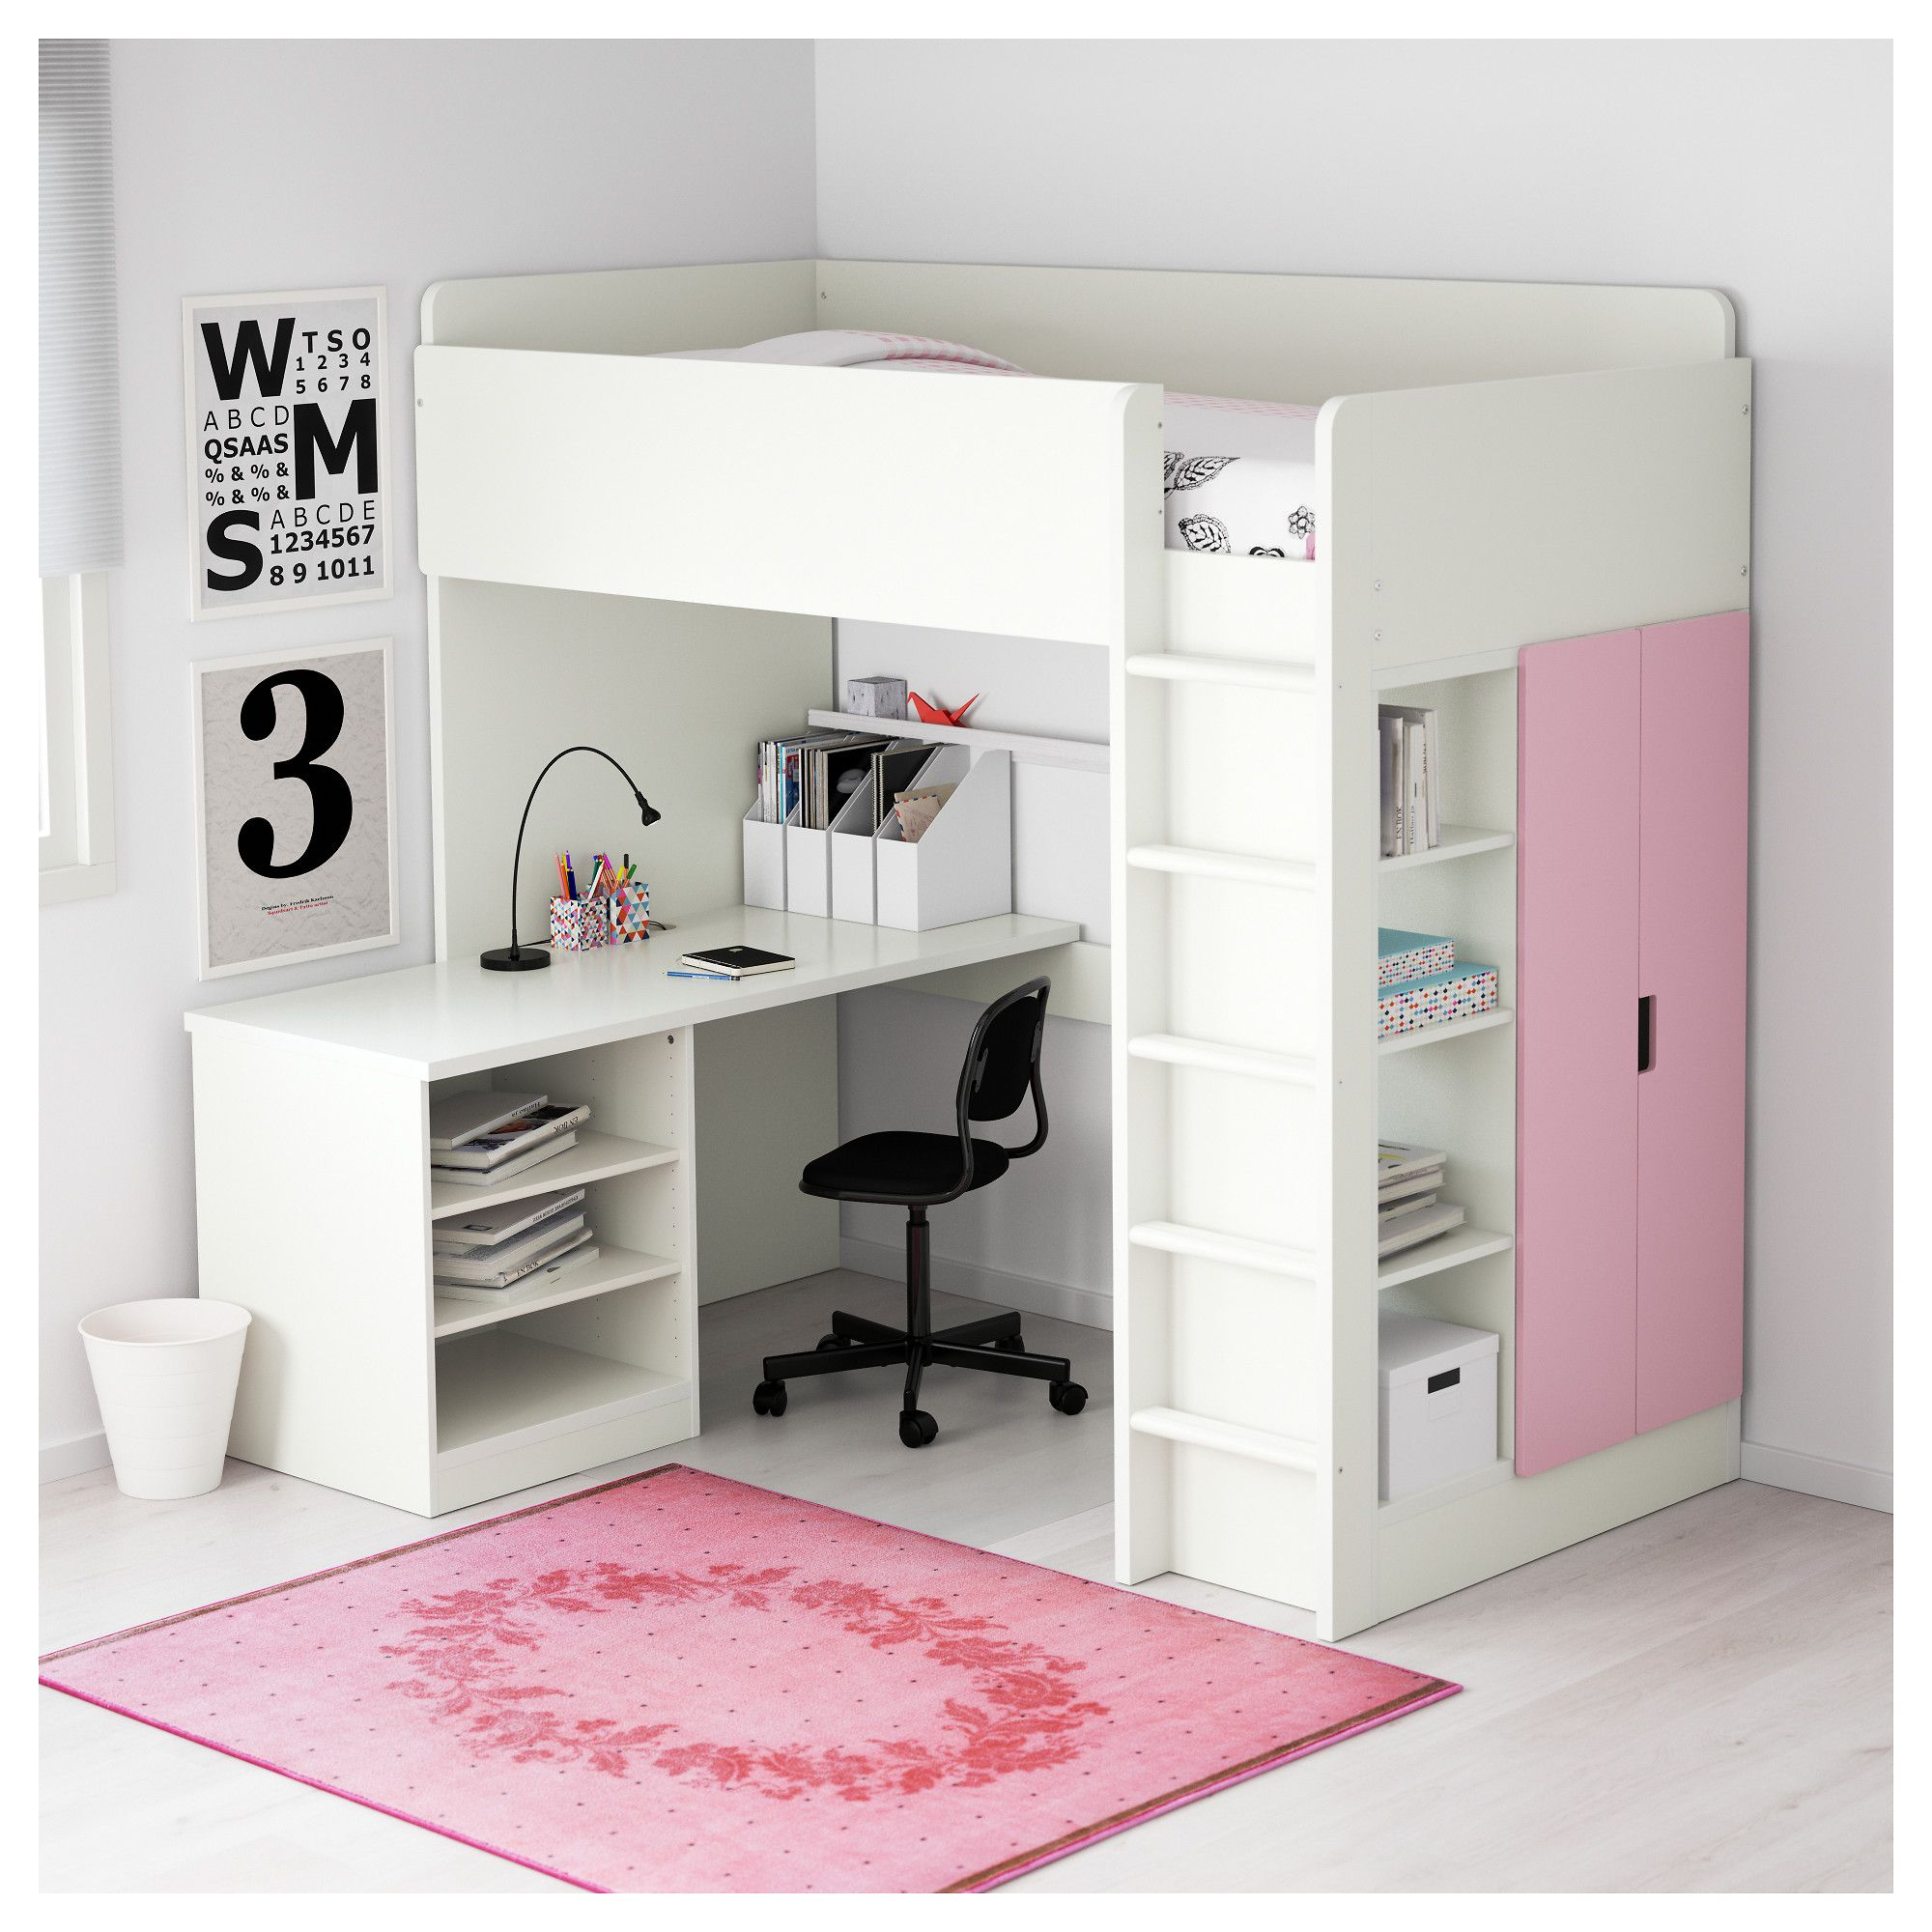 toddler bedroom furniture ikea photo 5. Childrens Furniture - Kids, Toddler \u0026 Baby IKEA Bedroom Ikea Photo 5 E